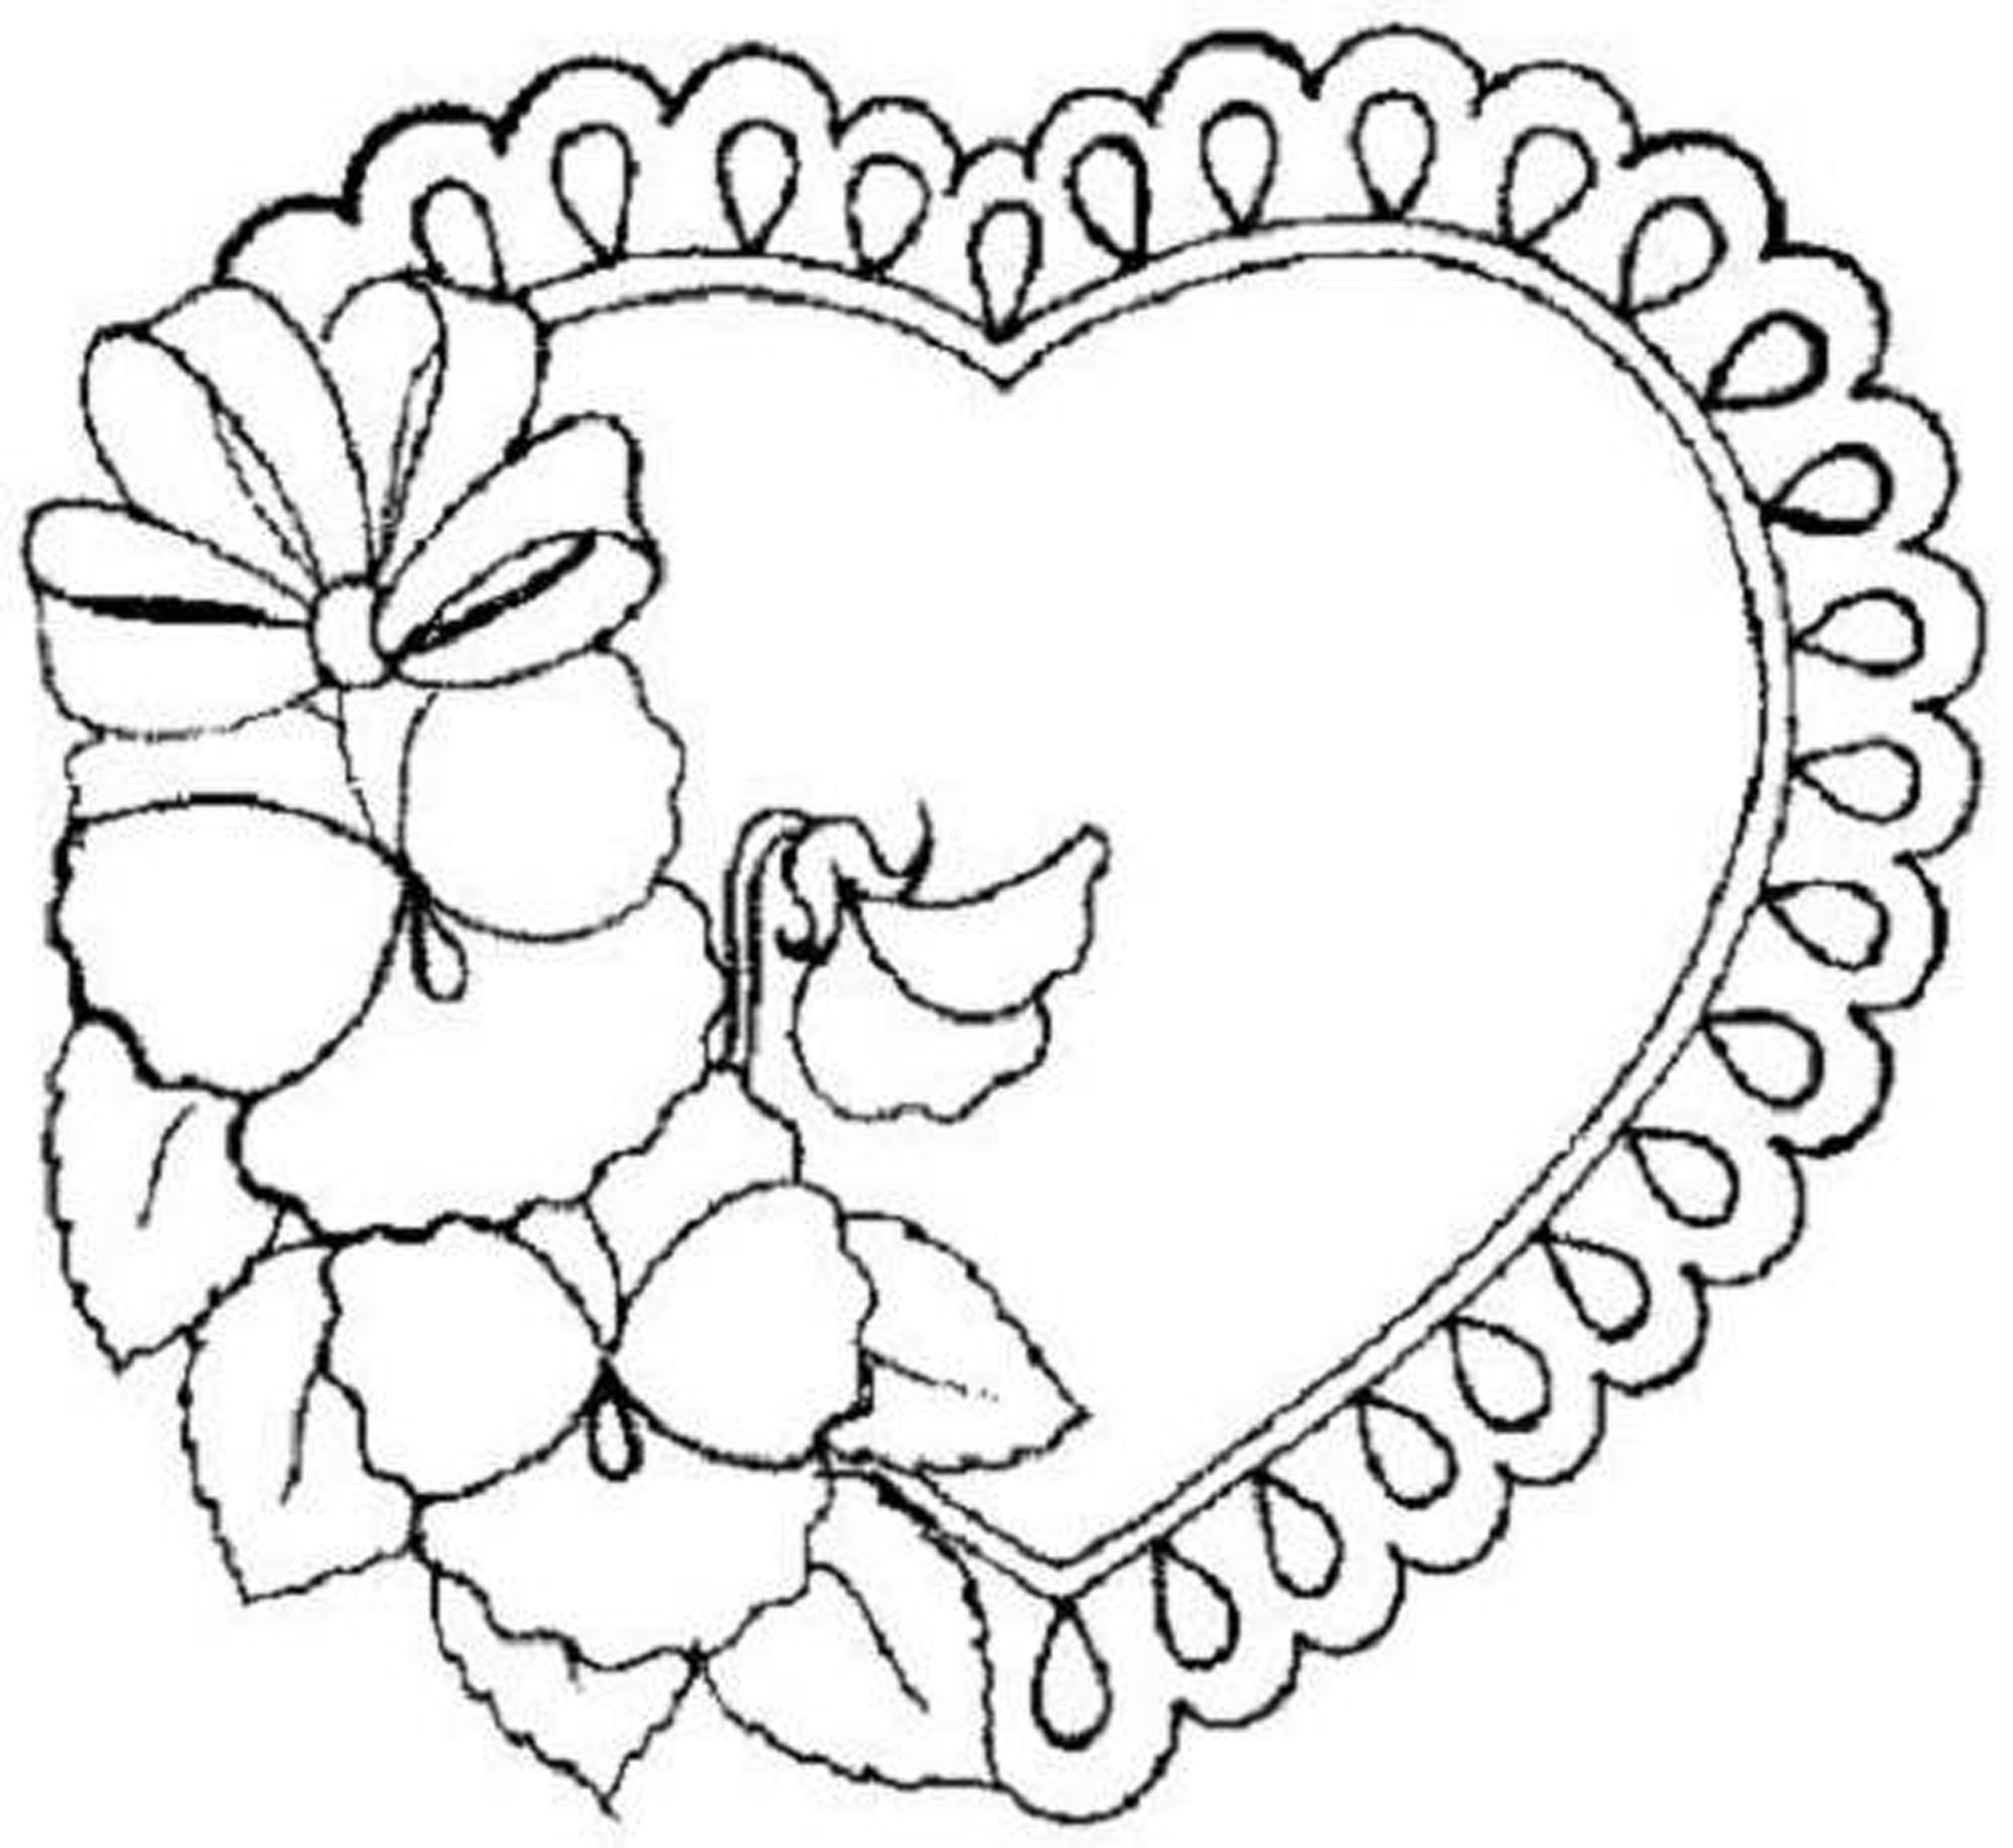 easy cute rose coloring pages free girls flowers coloring pages download free clip art pages easy rose cute coloring